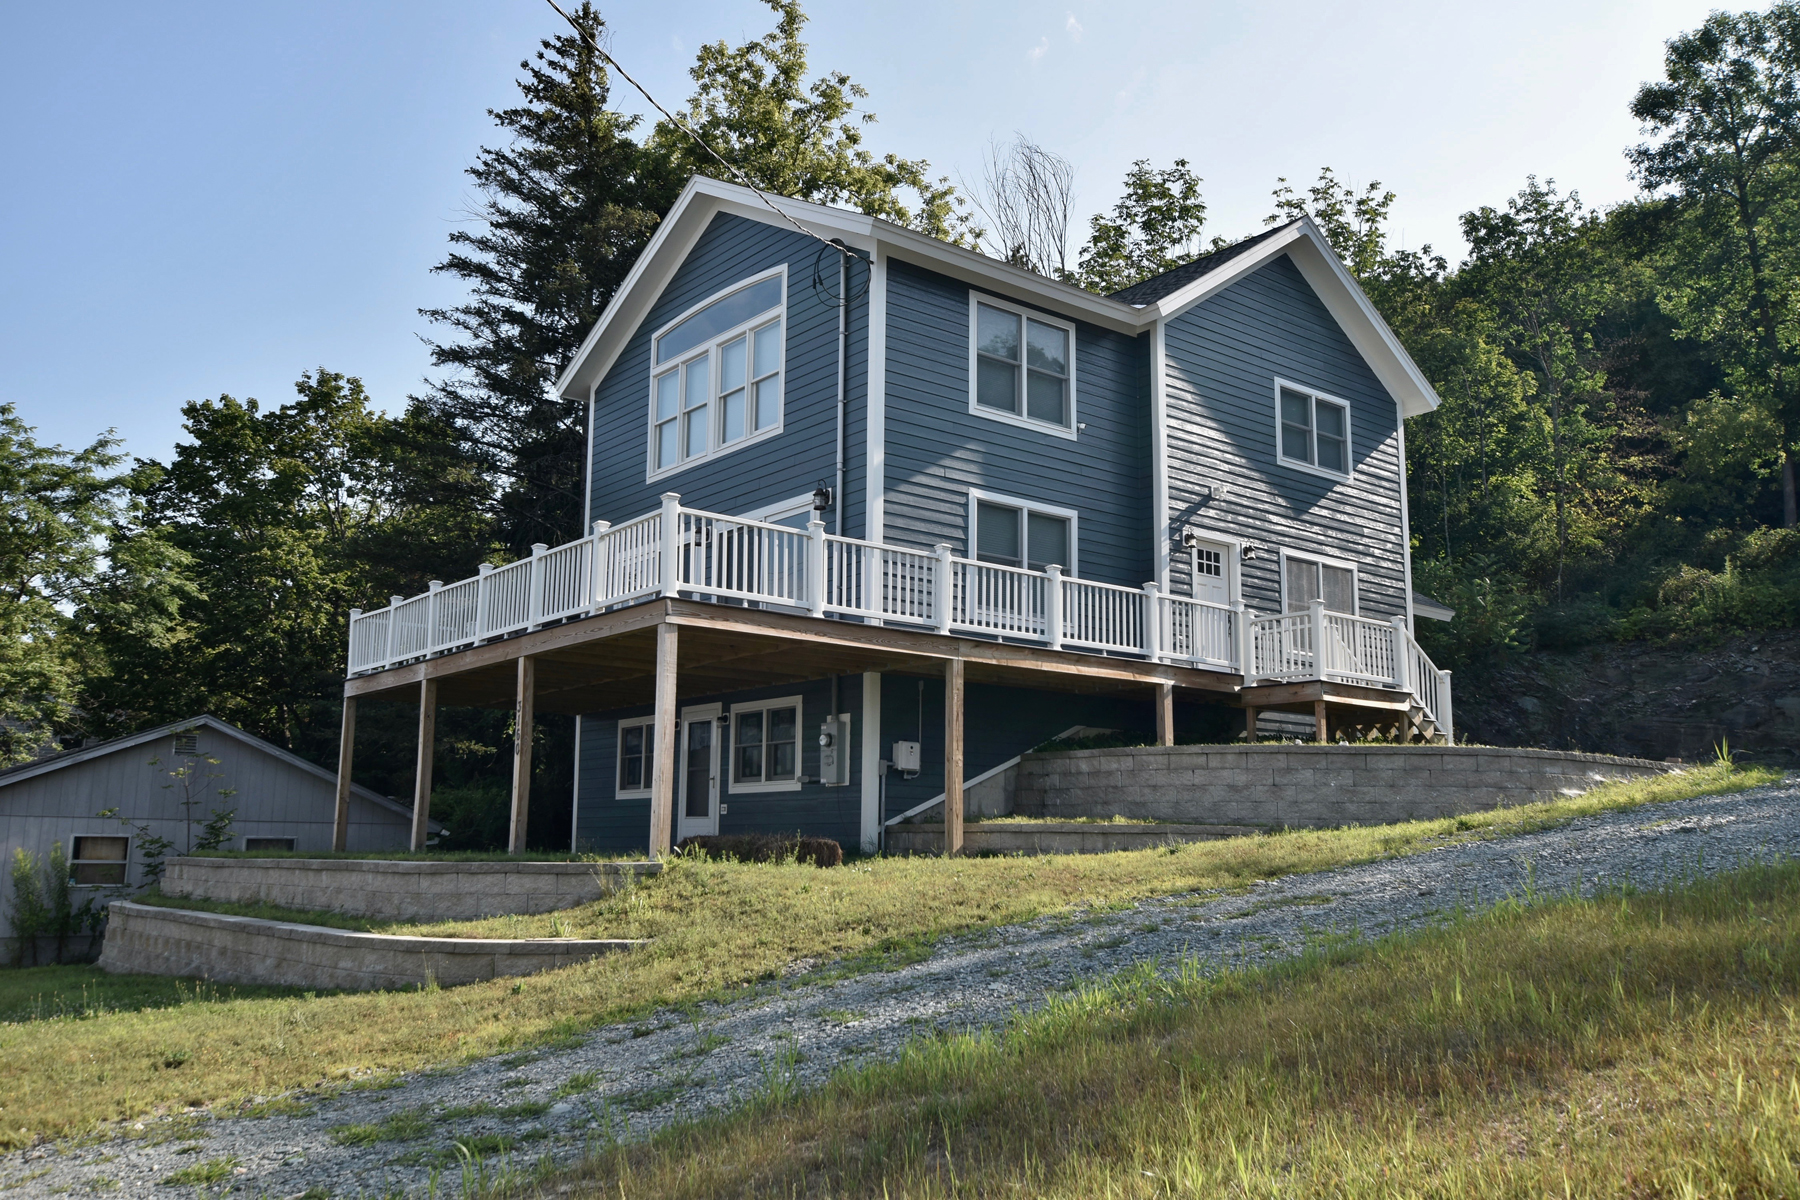 Single Family Homes for Sale at EAST SHORE MAKEOVER. Stunning Upgrades. Impressive 3160 Route 30 North Castleton, Vermont 05735 United States